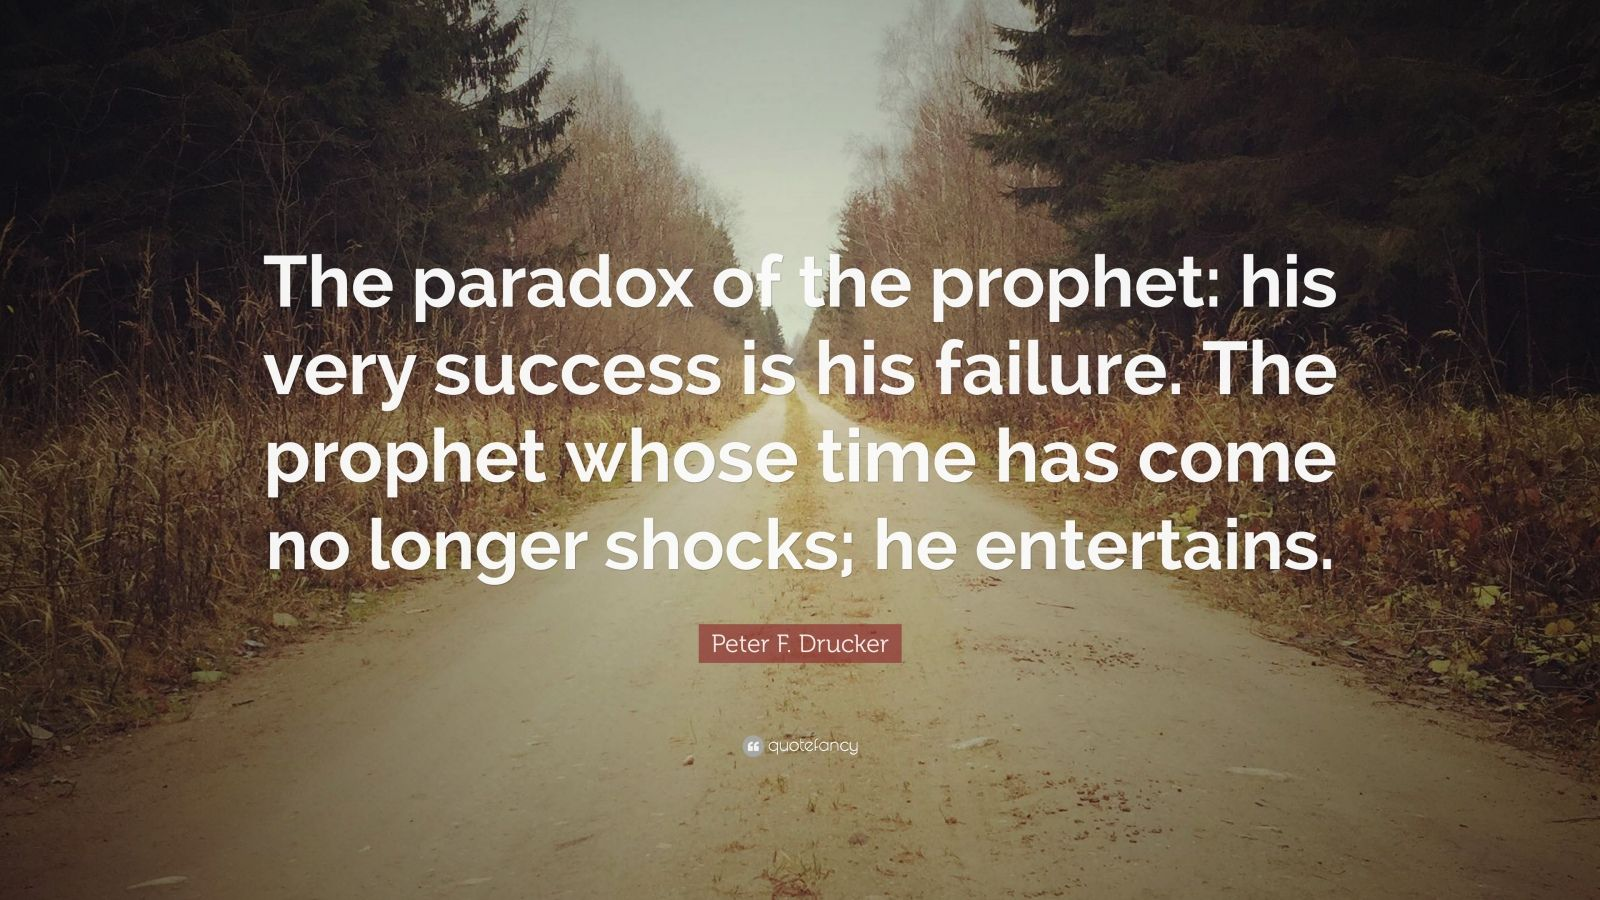 """Peter F. Drucker Quote: """"The paradox of the prophet: his very success is his failure. The prophet whose time has come no longer shocks; he entertains."""""""